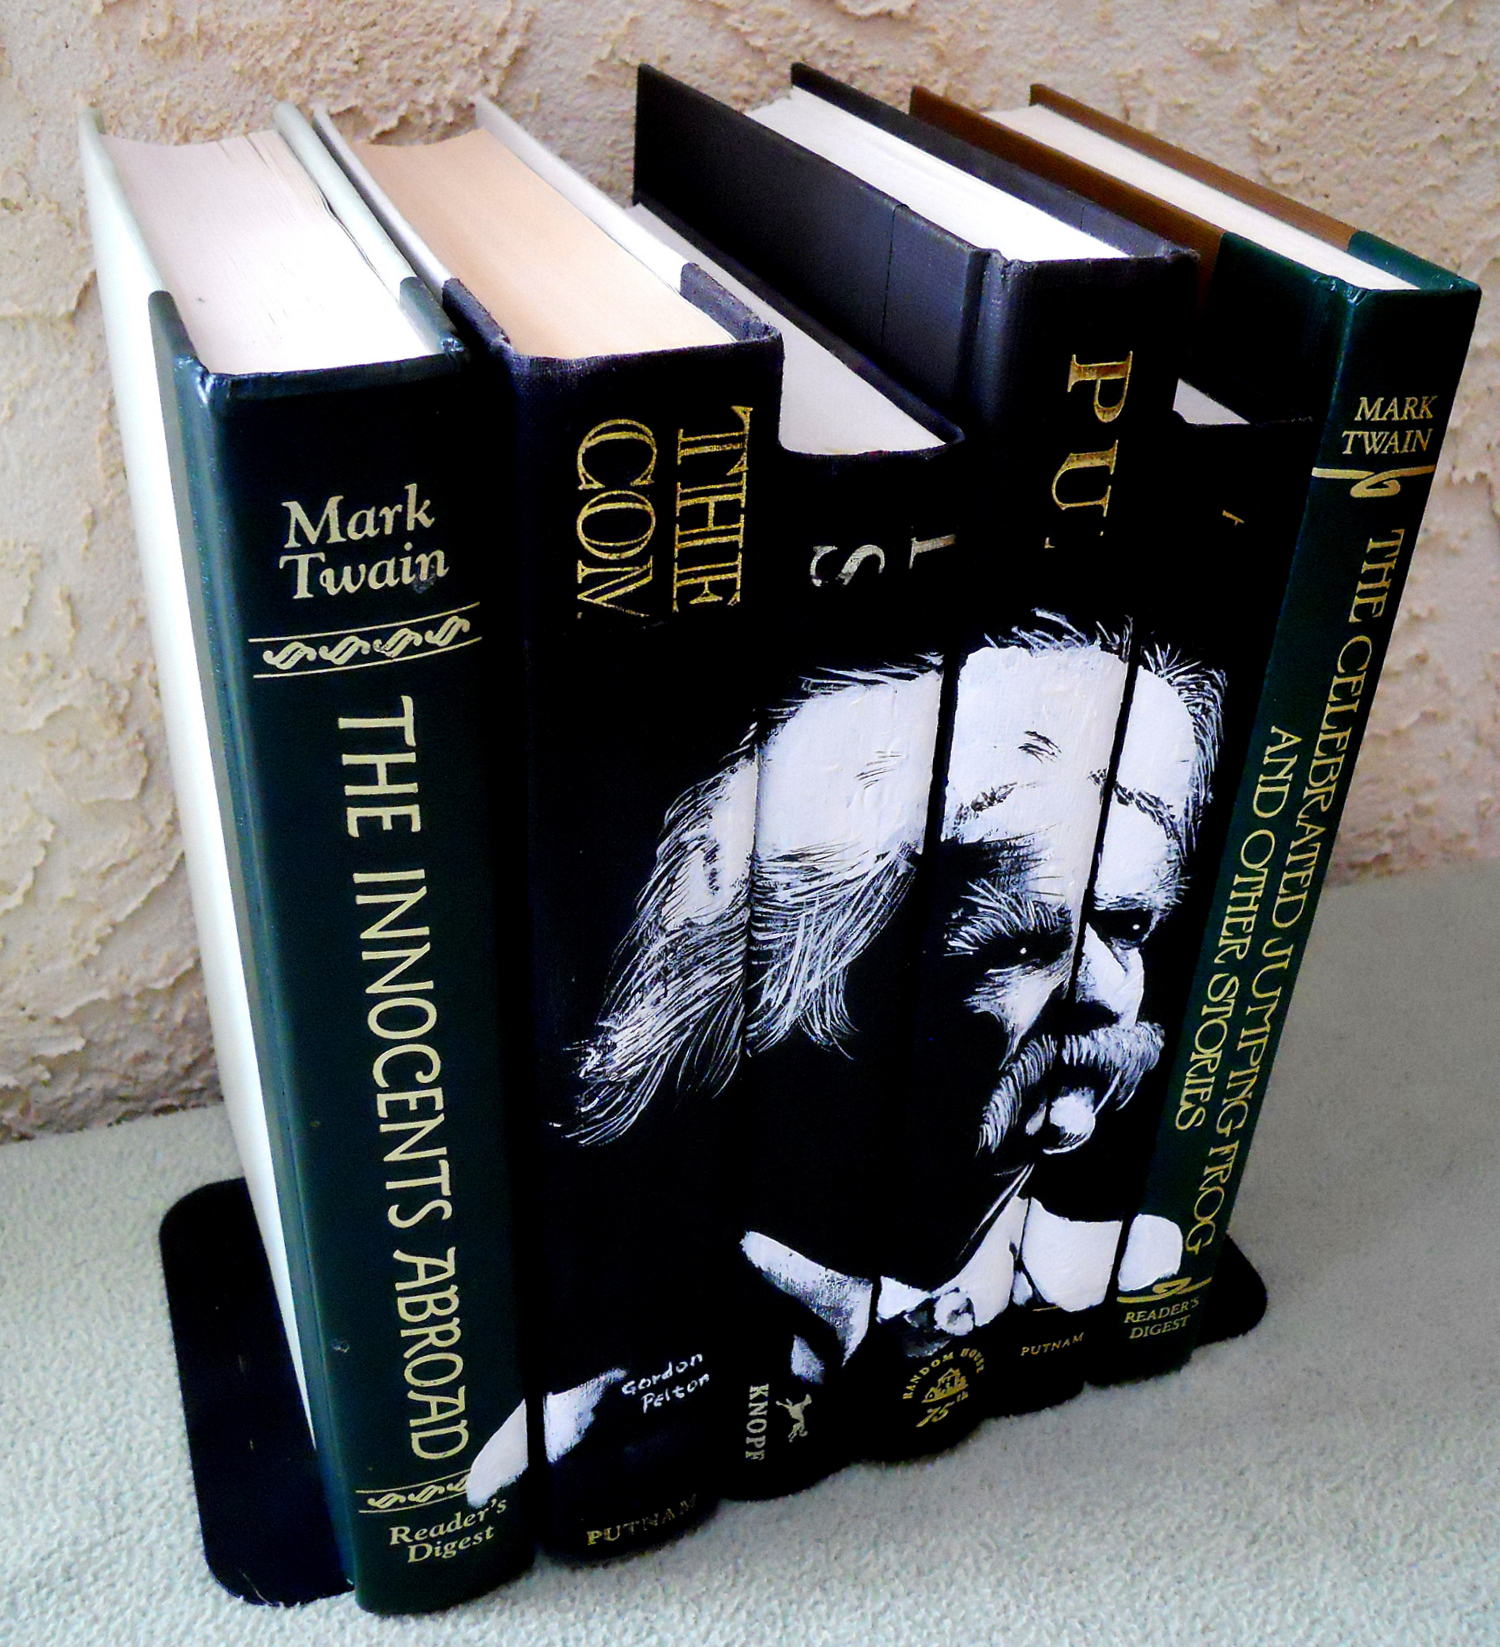 Mark Twain,  Three Views  Acrylic on Book Spines  $795     PLACE ORDER